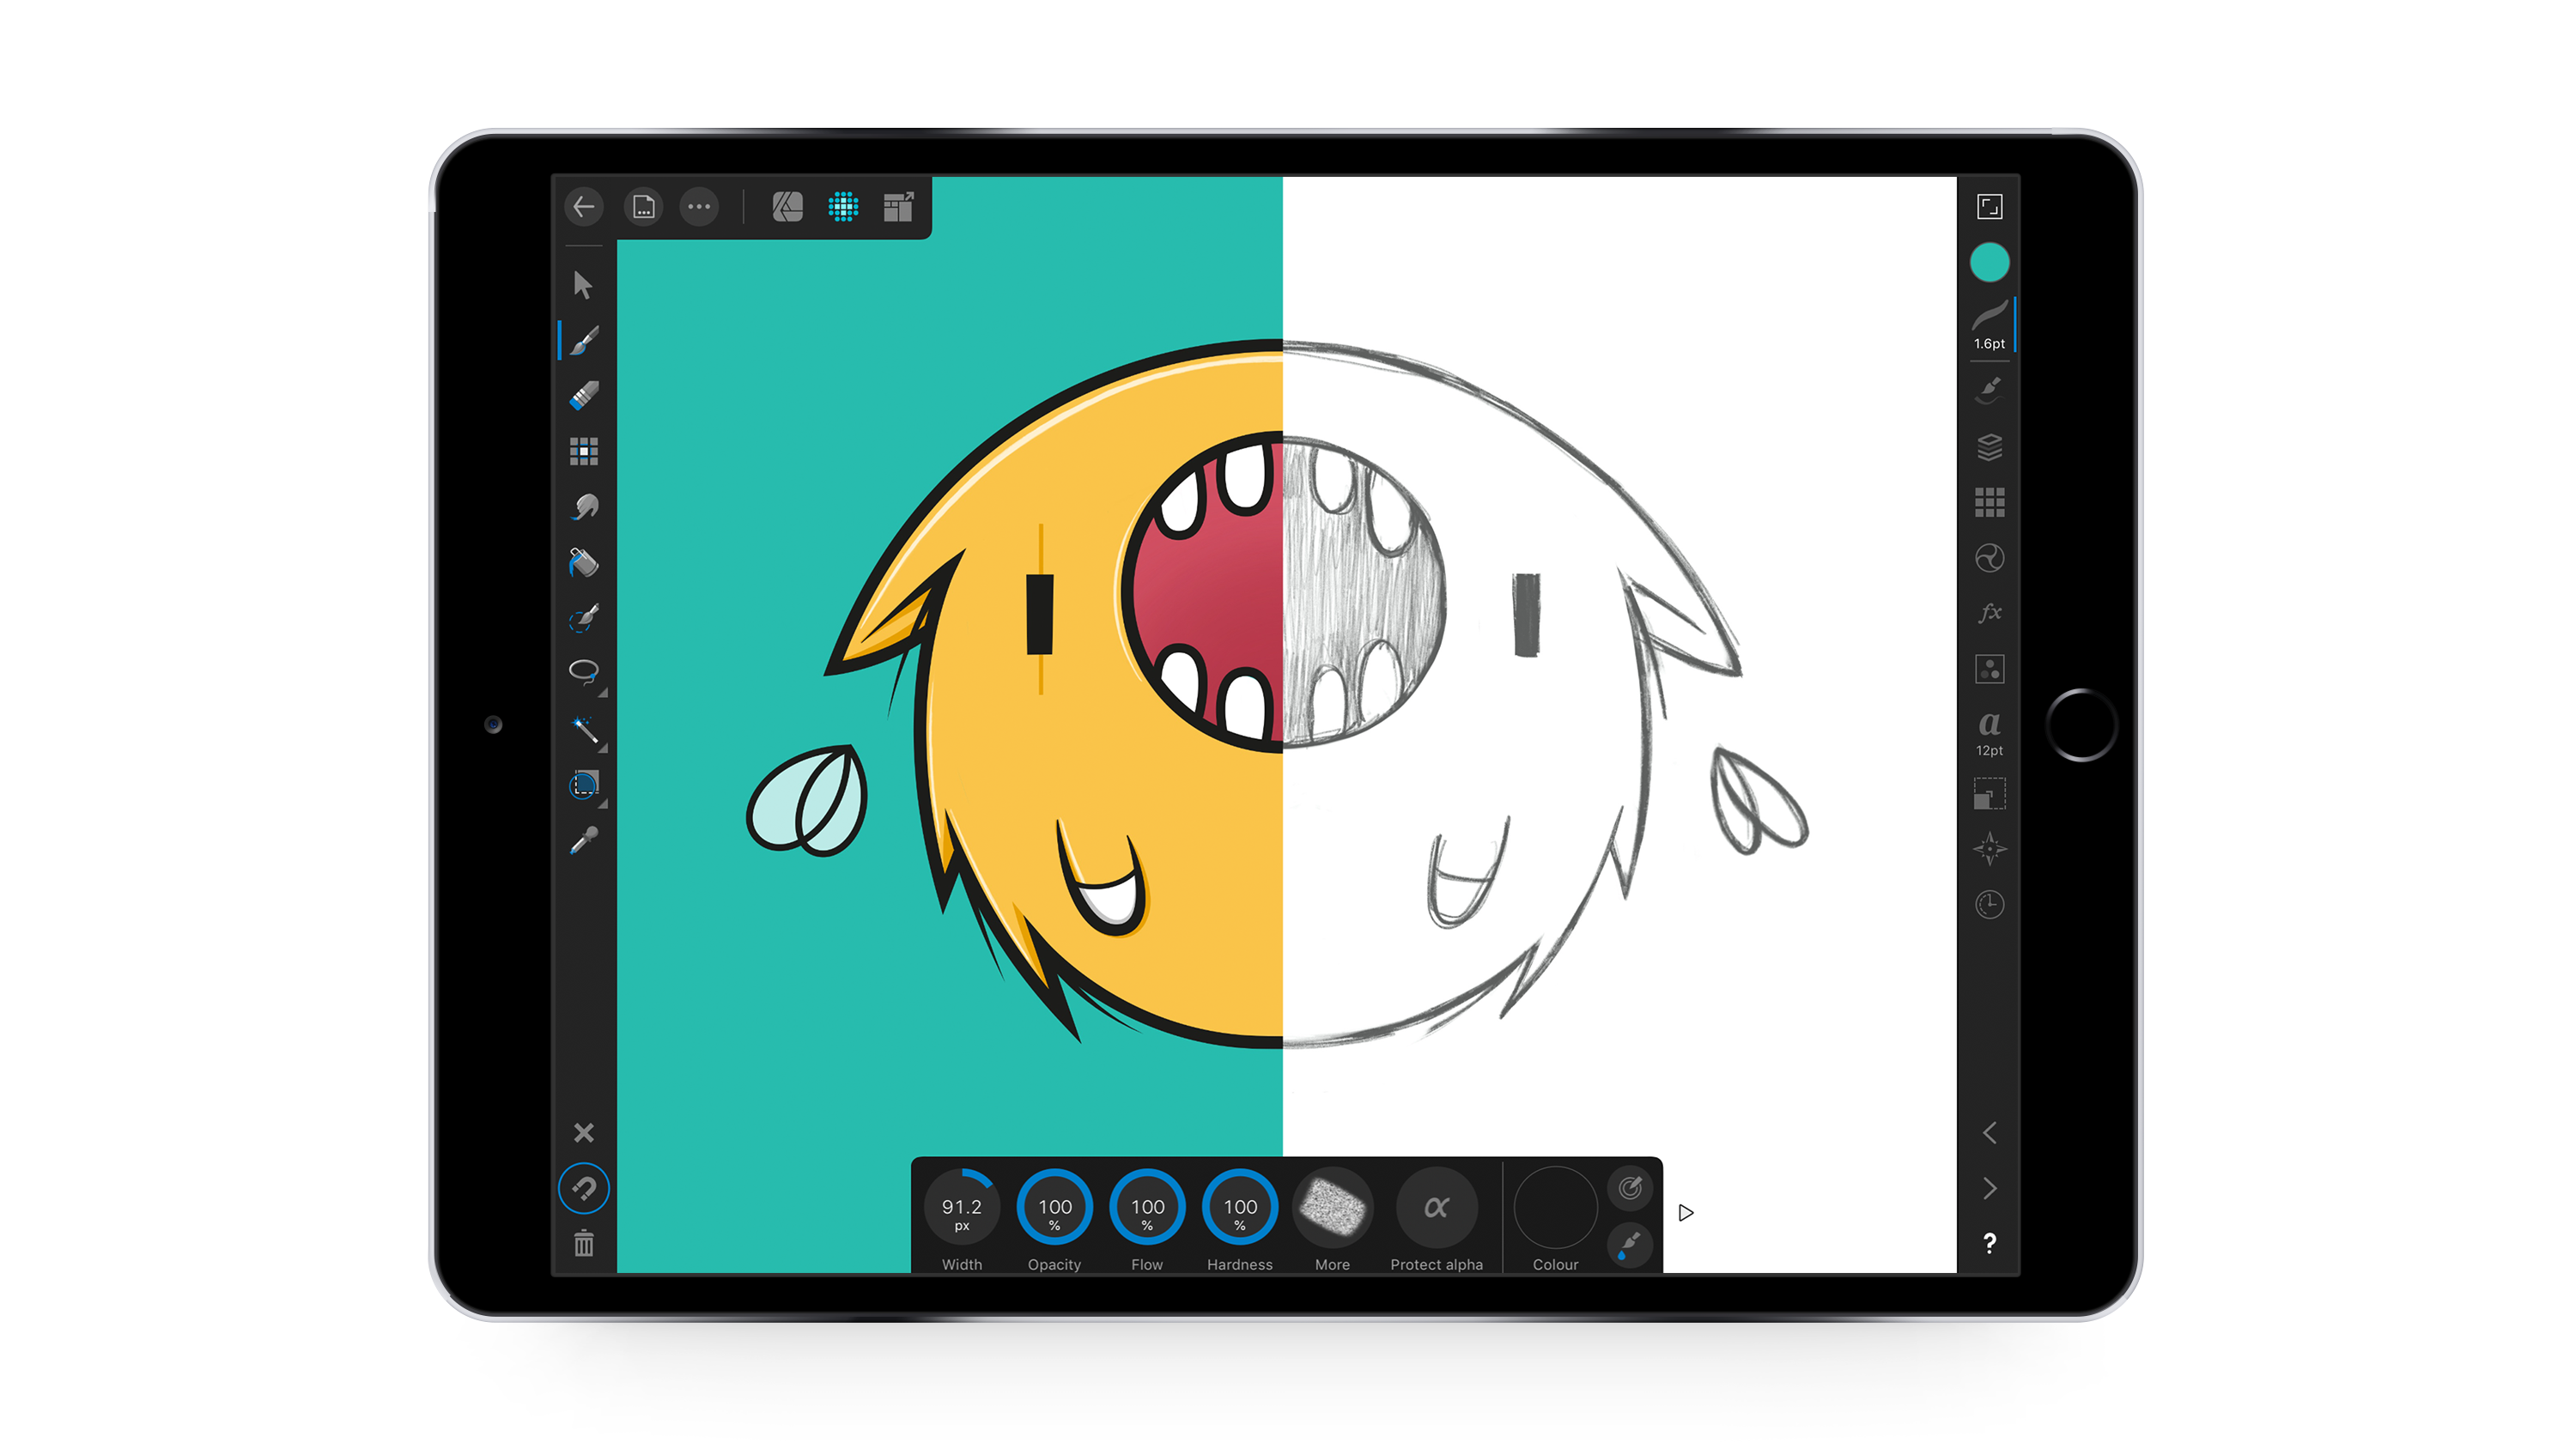 Screenshot of a character in Affinity Designer for iPad appr18